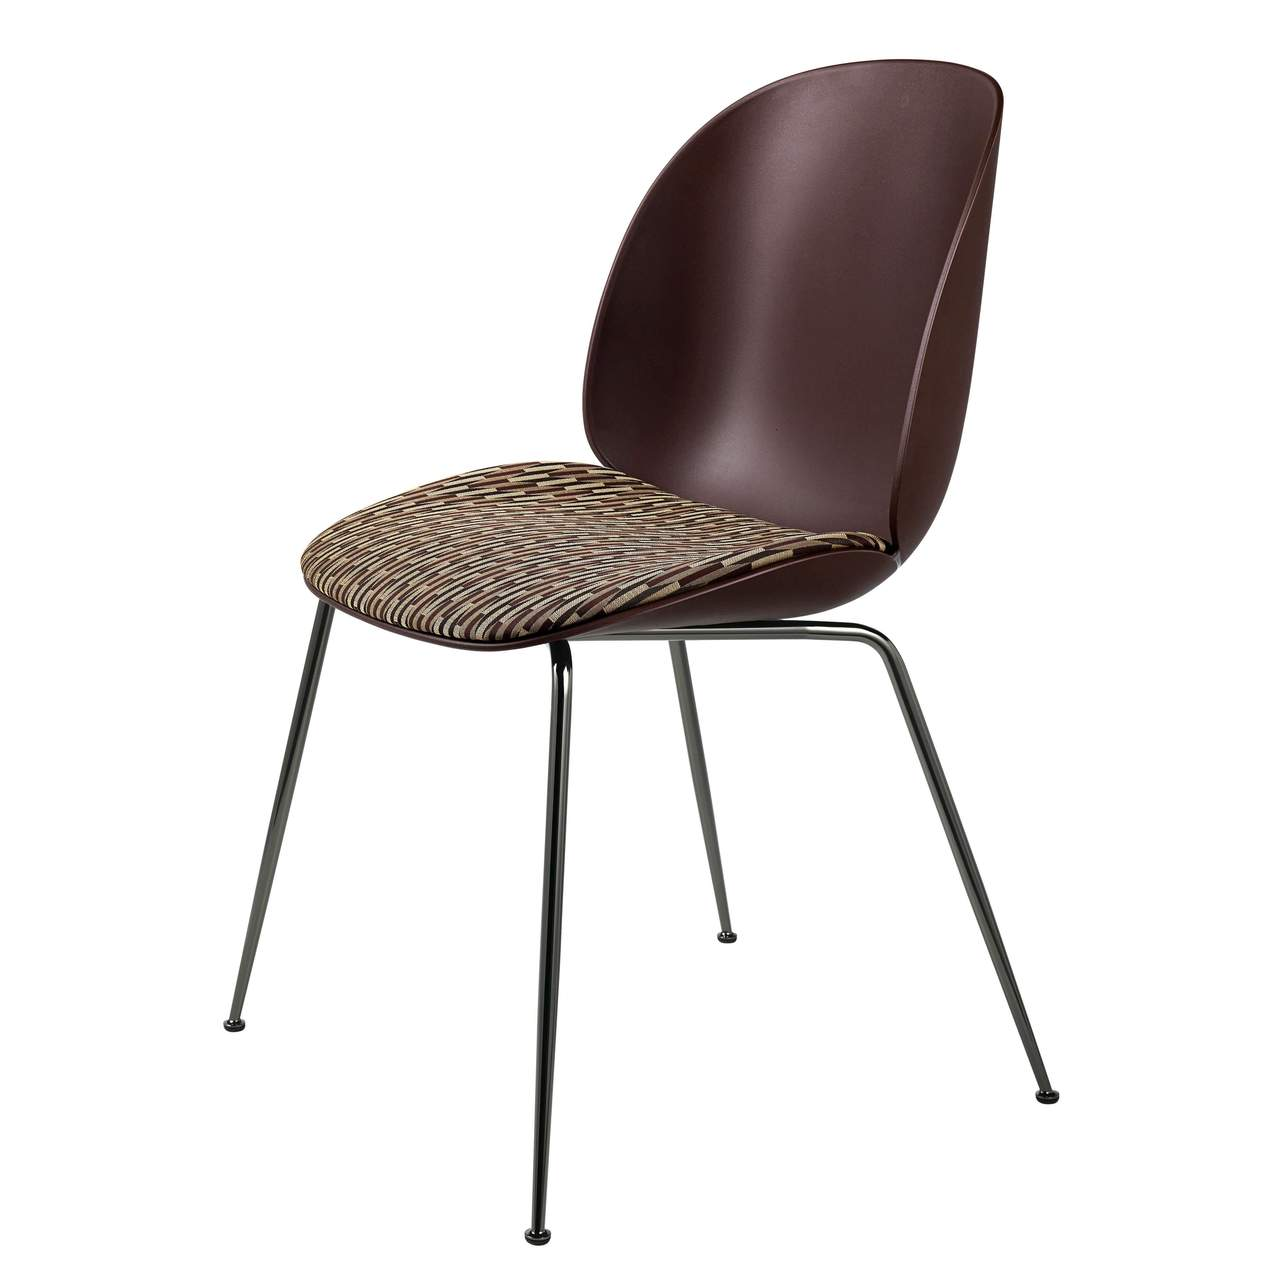 6639_Gubi-Beetle-Dining-Chair-Conic-Base-Front-Upholstery-9_640x@2x.progressive